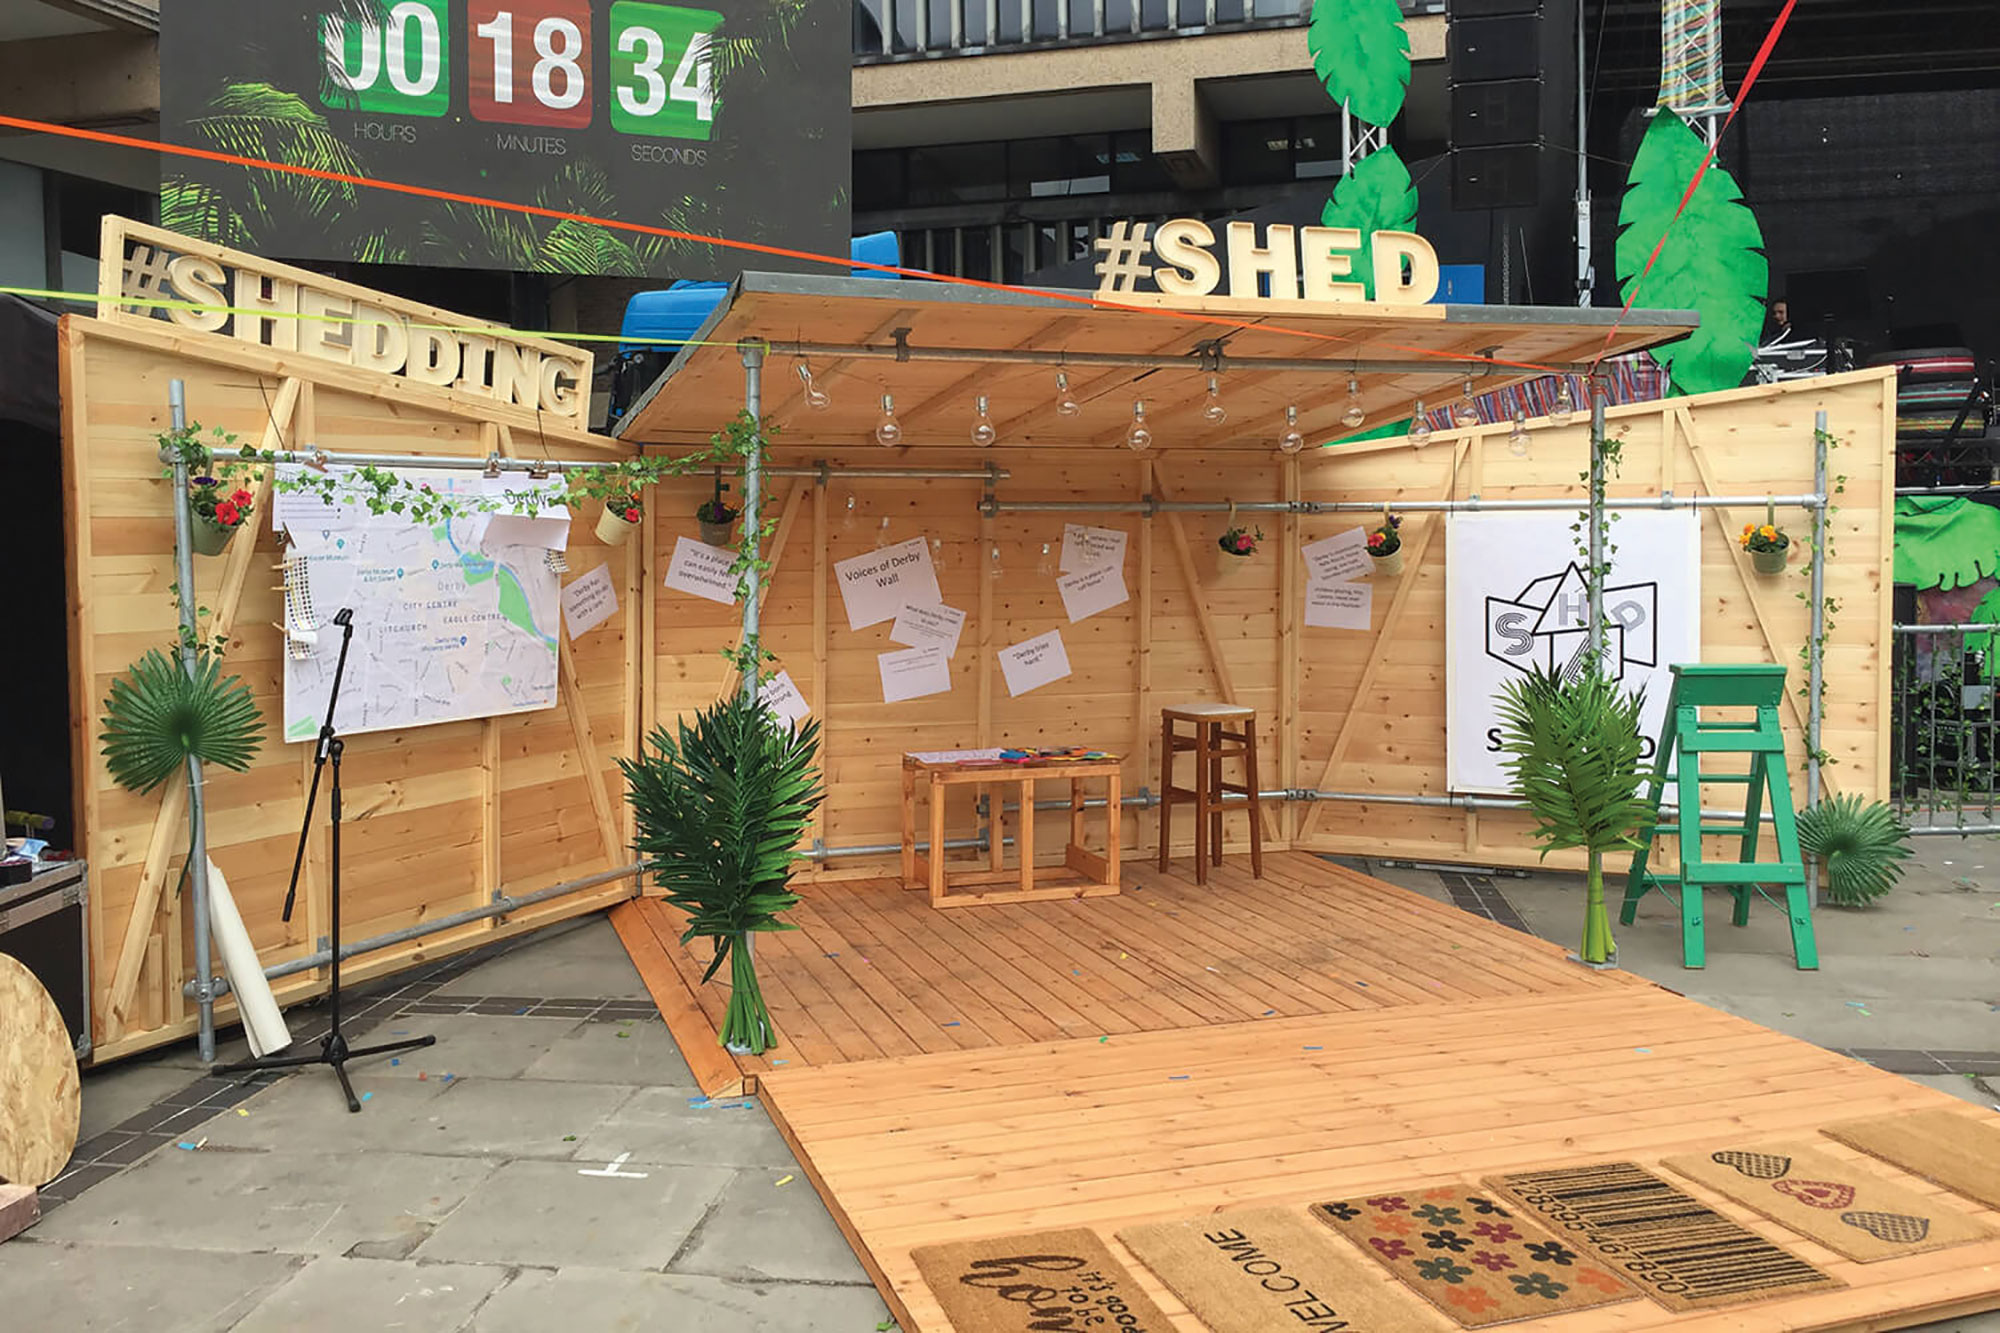 The Social Higher Education Depot (S.H.E.D) opened out into outdoor performance space